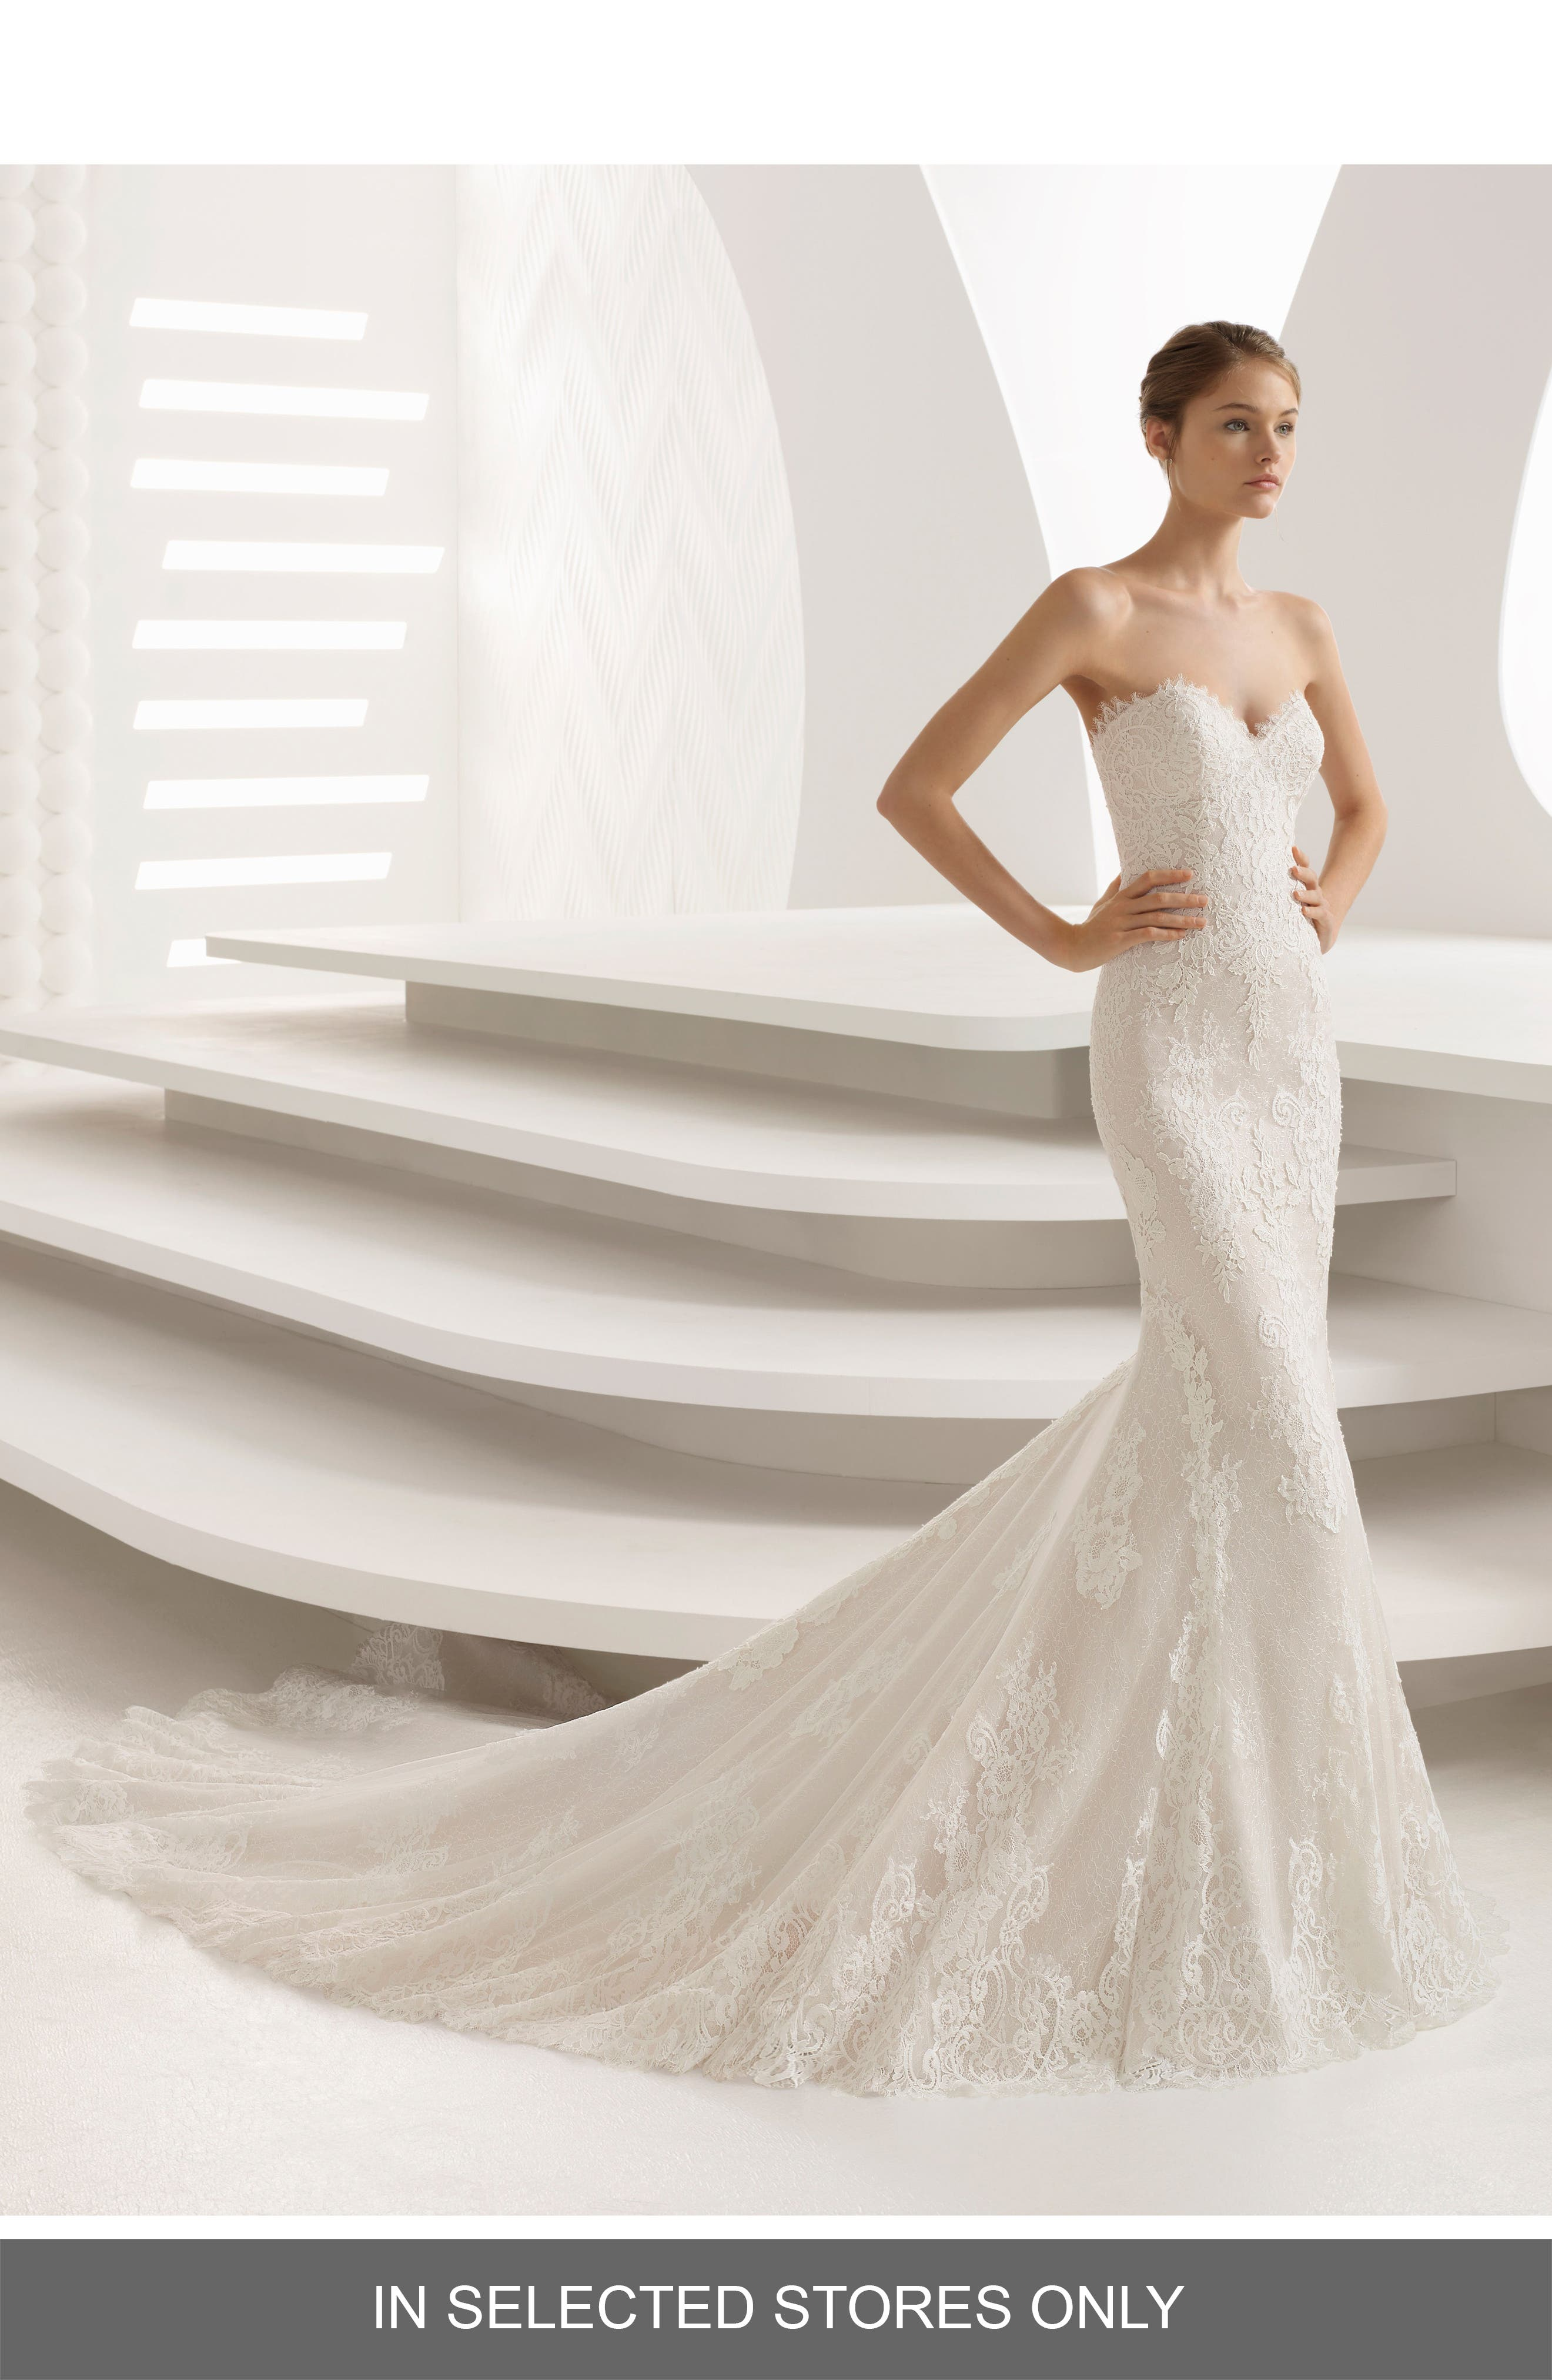 Alternate Image 1 Selected - Rosa Clara Abril Strapless Sweetheart Lace Mermaid Gown